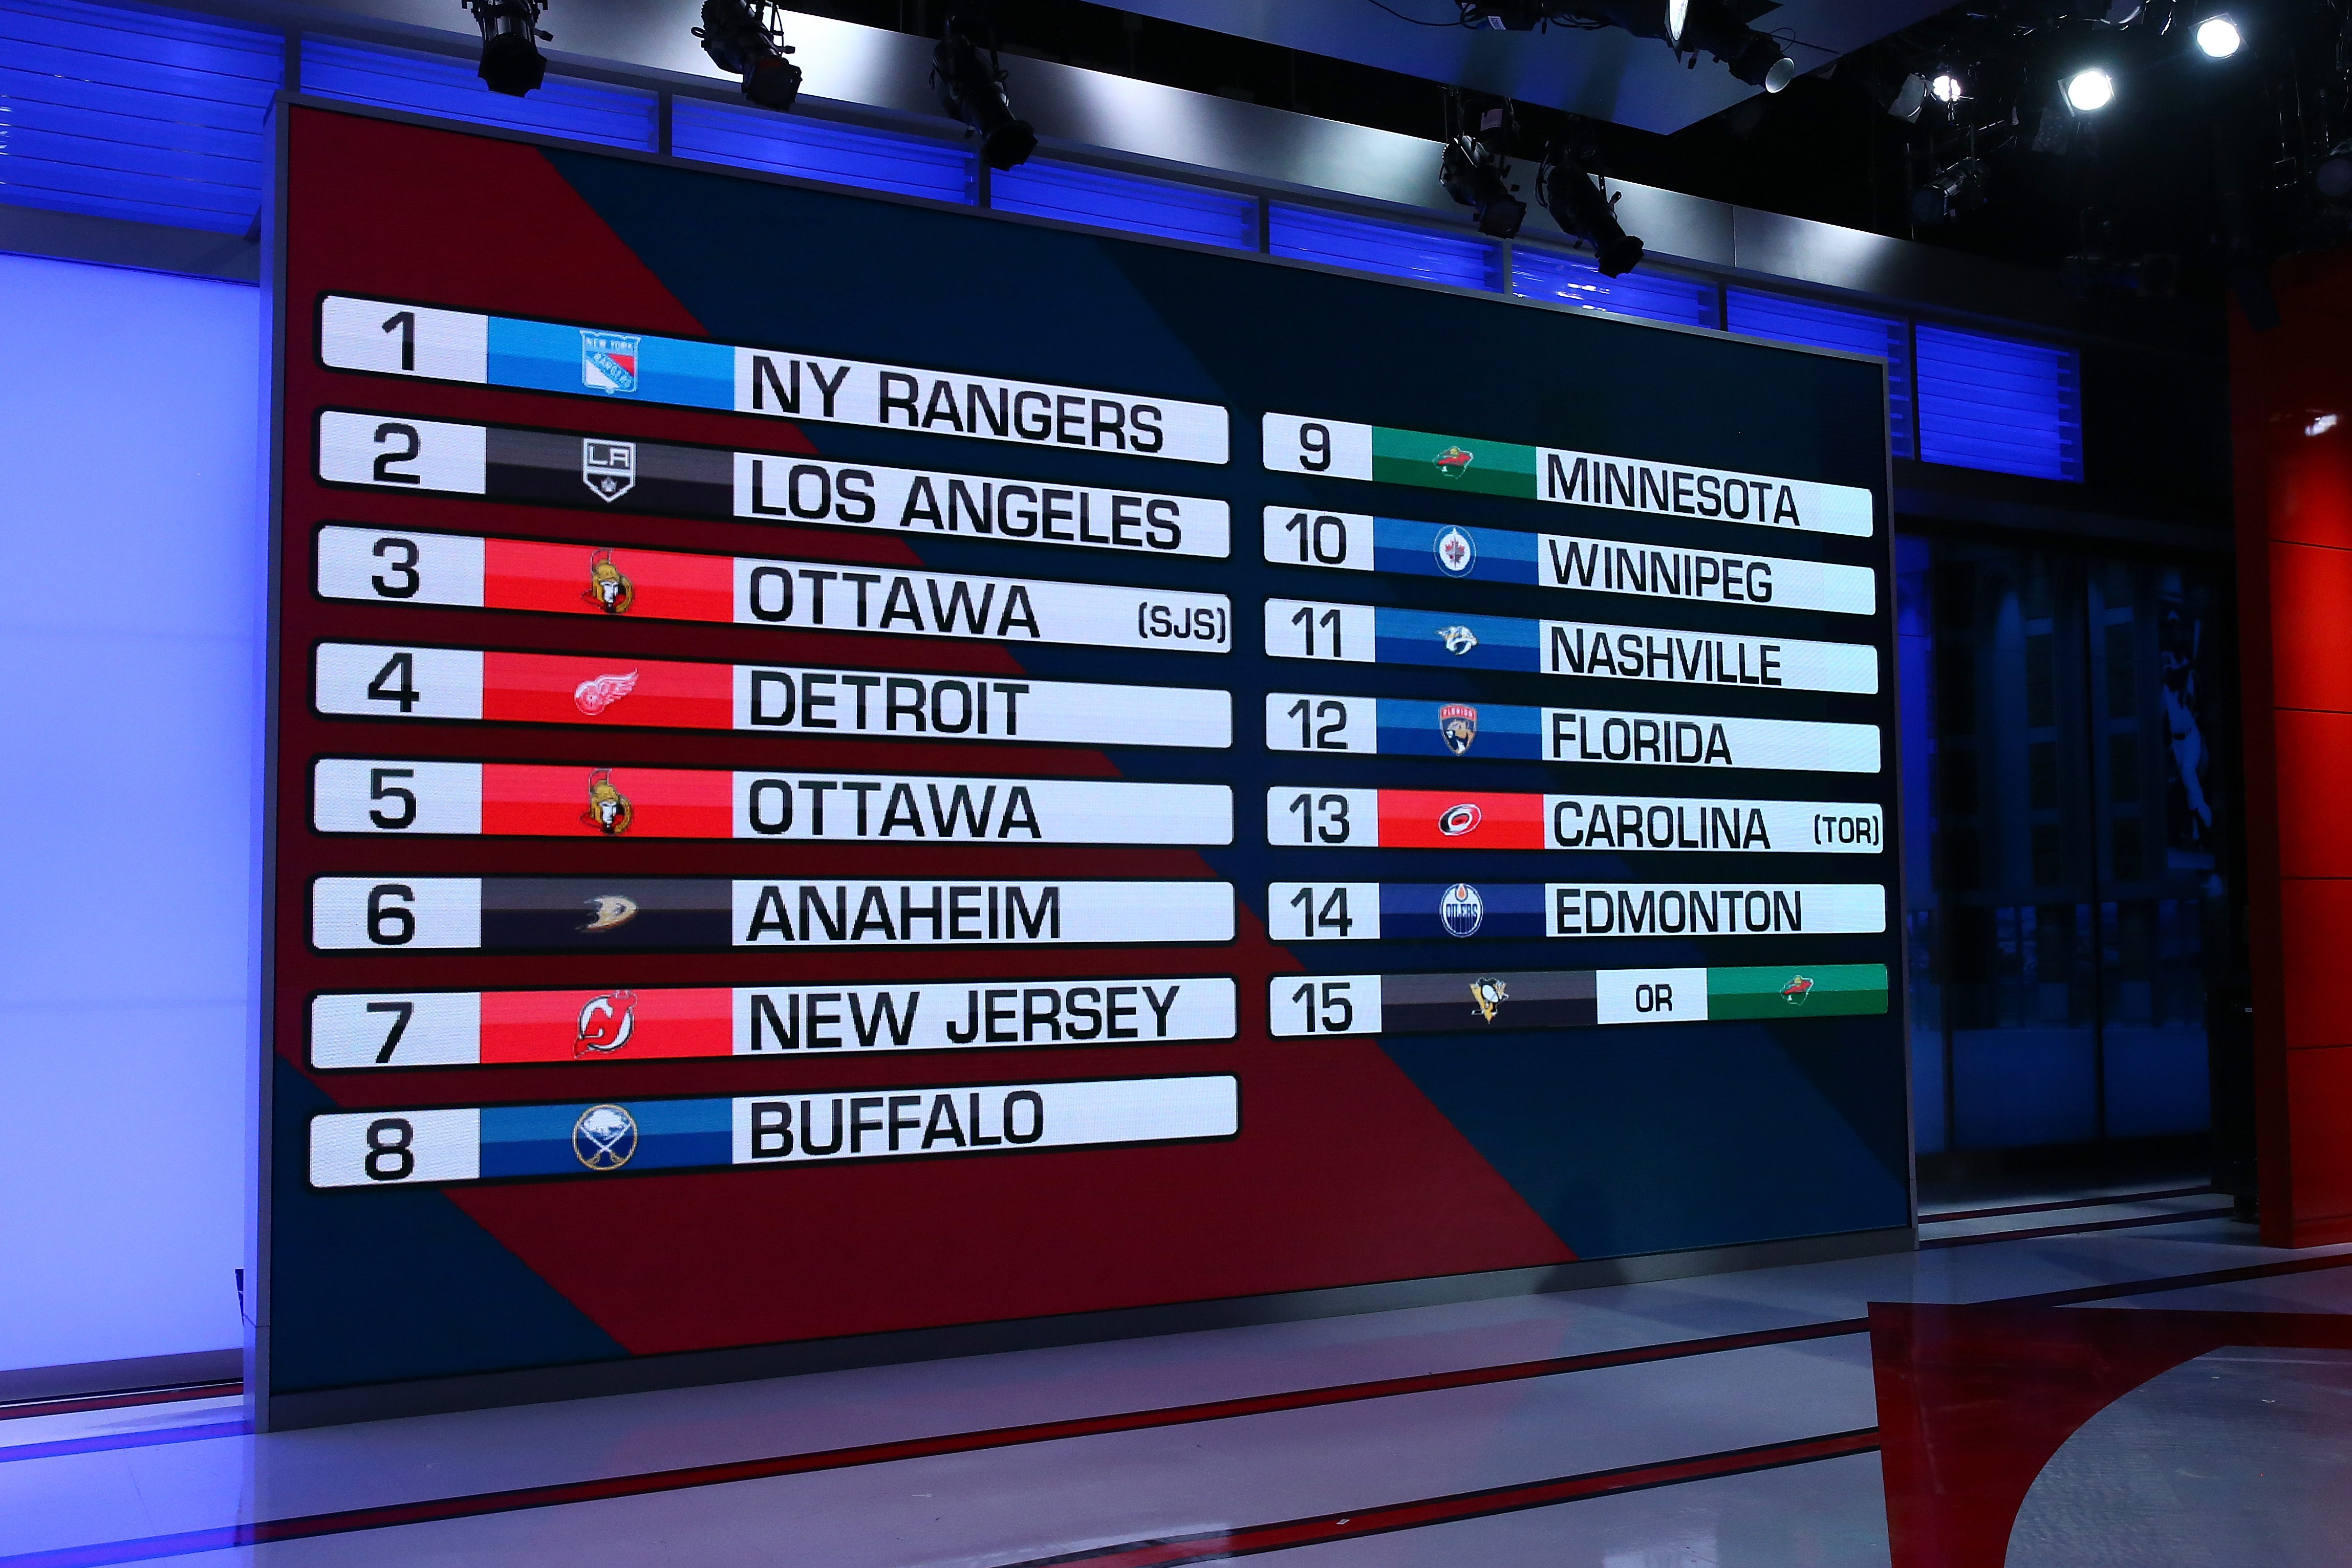 NHL draft positions are seen during Phase 2 of the 2020 NHL Draft Lottery on August 10, 2020 at the NHL Network's studio in Secaucus, New Jersey.